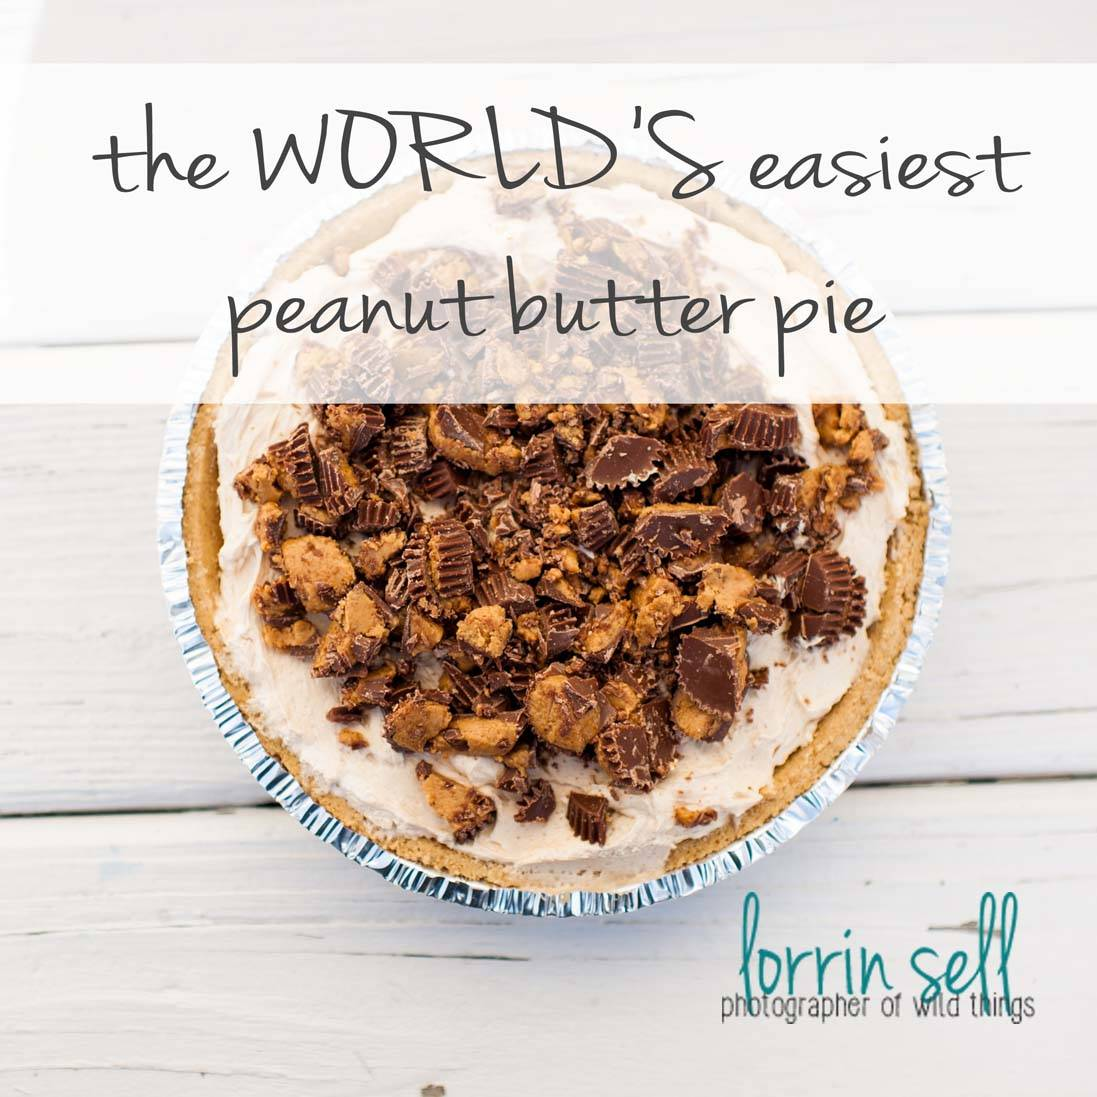 this is honestly the best pie i have ever had. so delicious, and so easy!